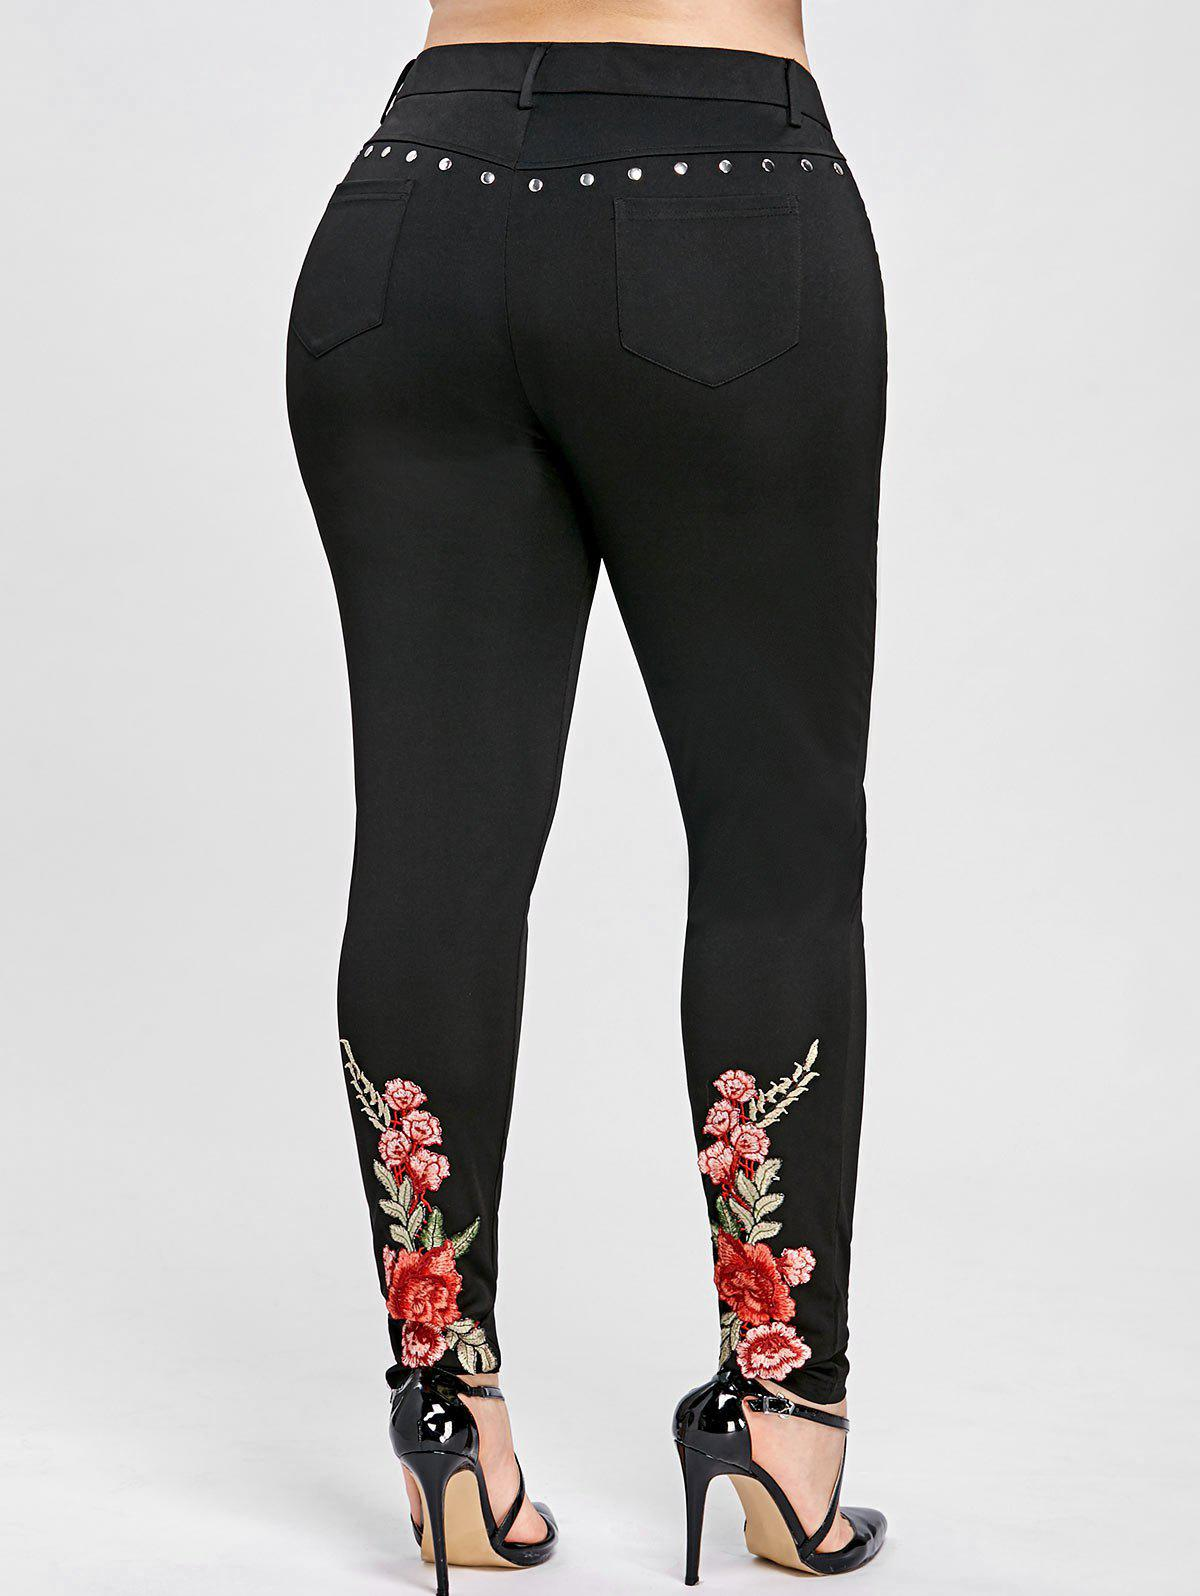 Buy Floral Embroidery Rivet Plus Size Pencil Pants